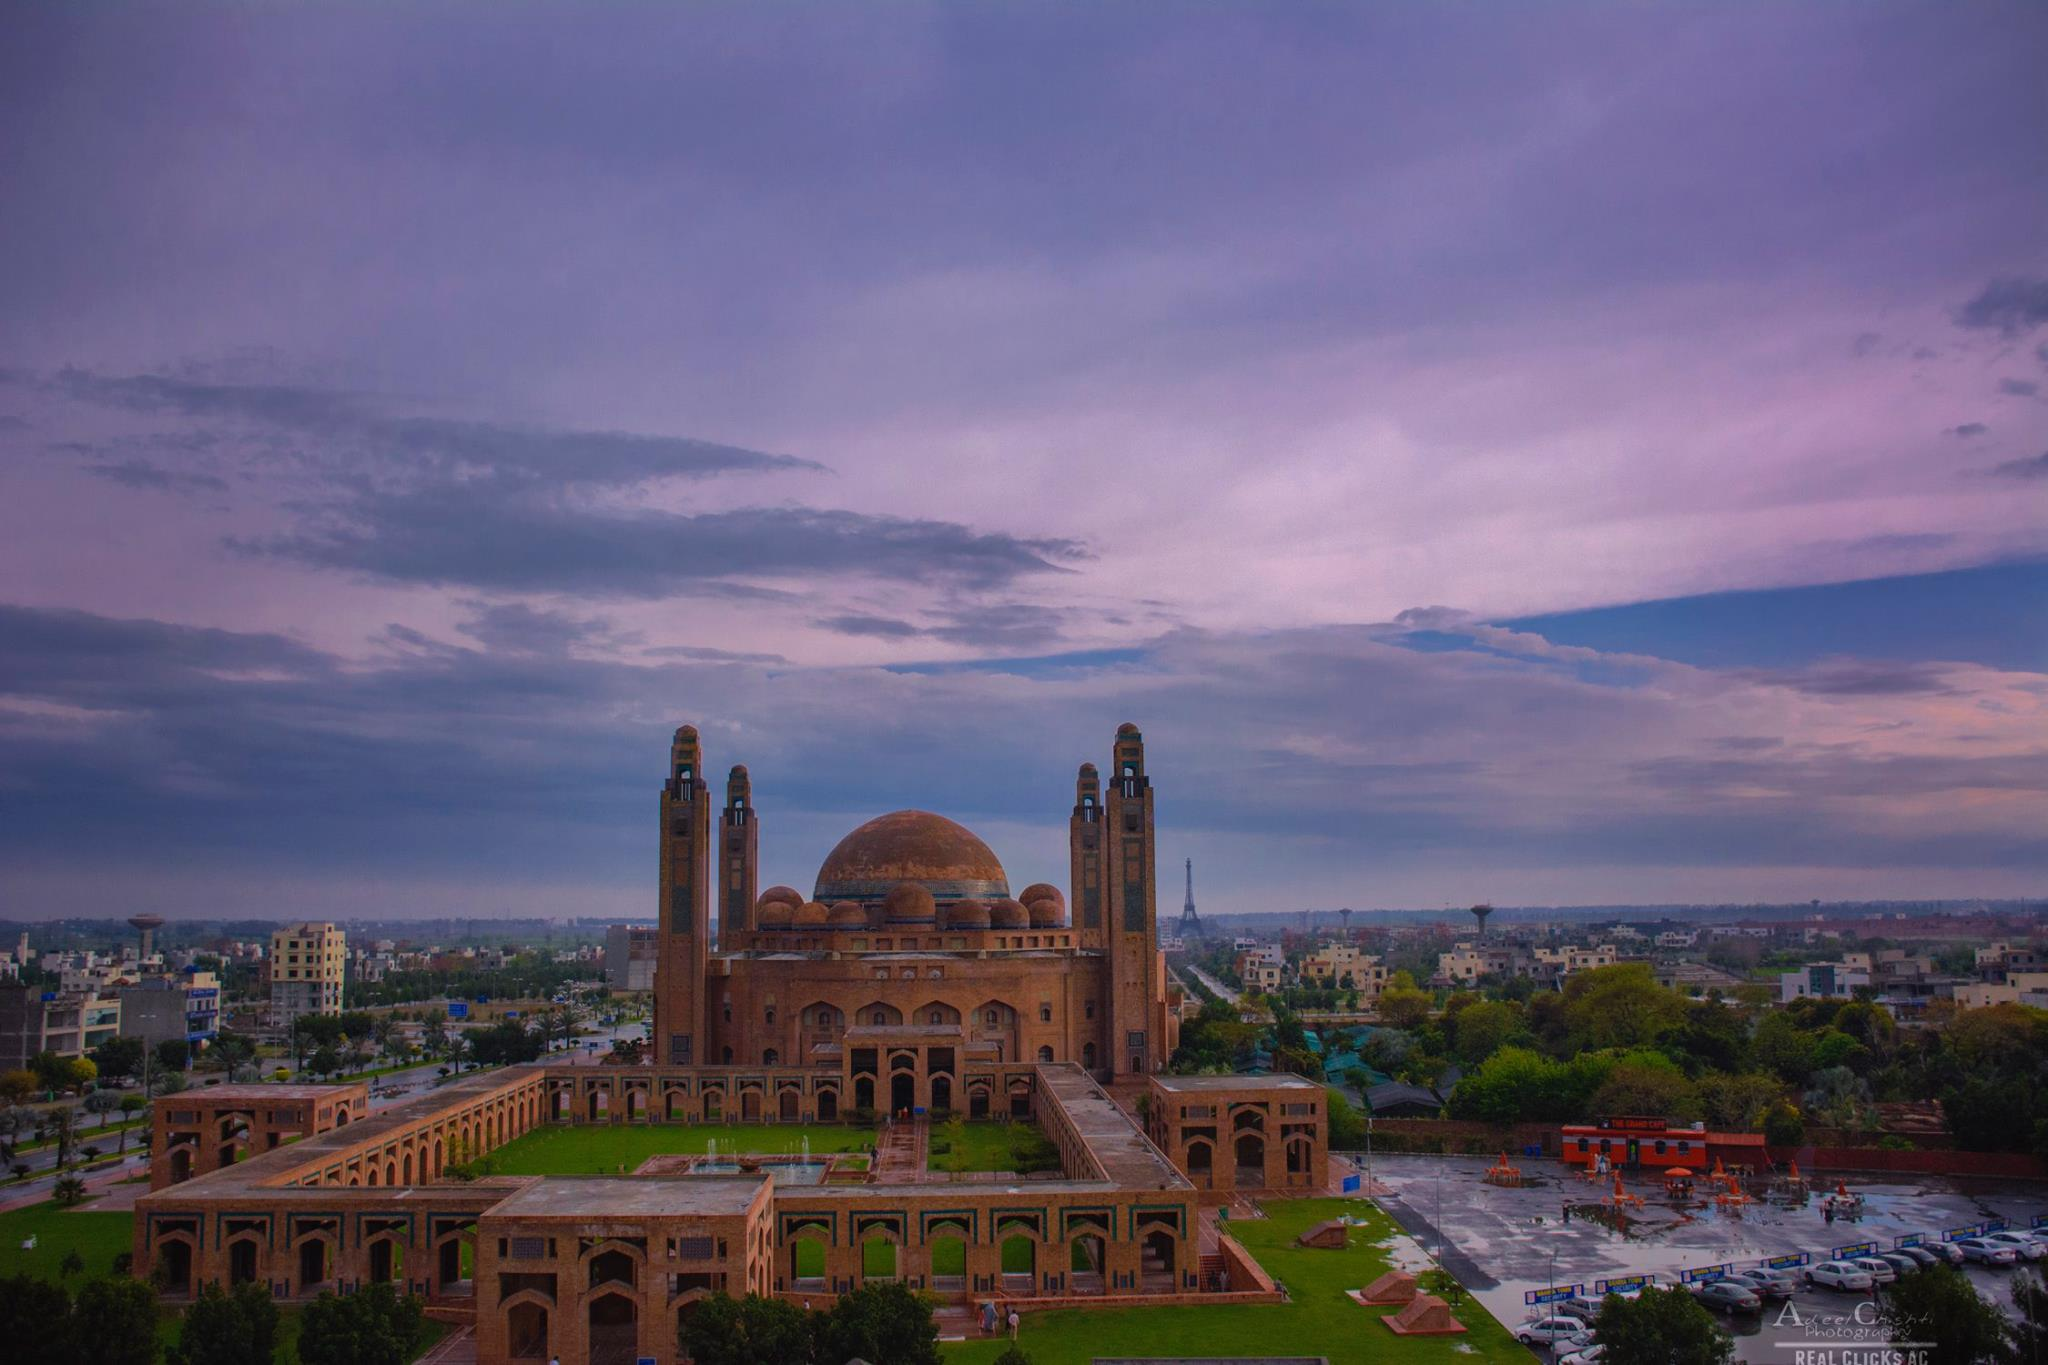 jamia masjid - things to do in Lahore